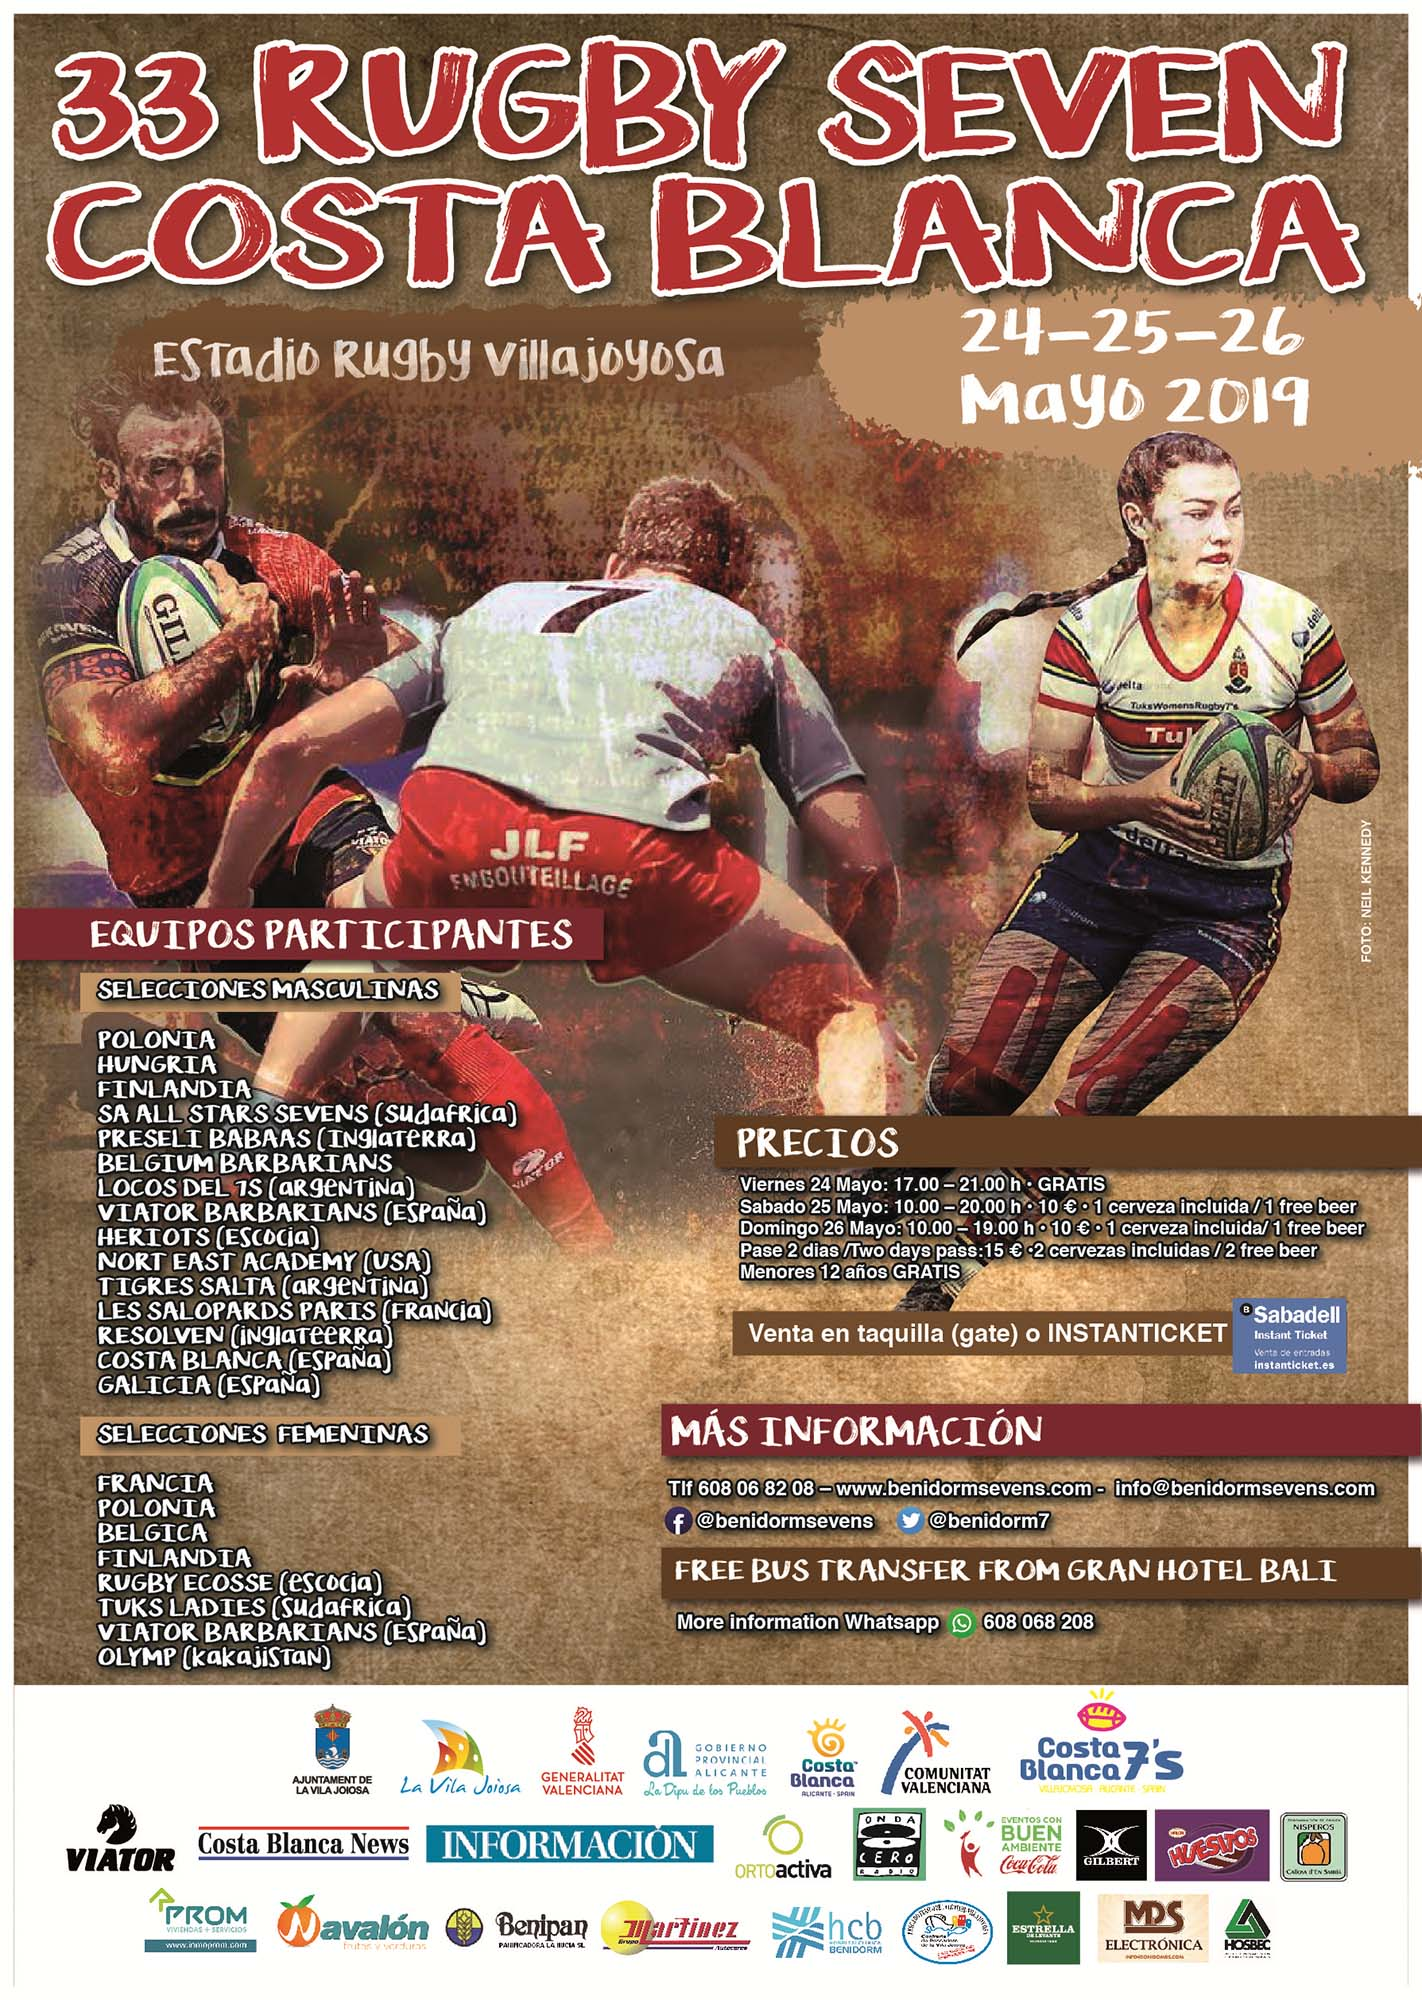 33rd INTERNATIONAL RUGBY SEVENS COSTA BLANCA